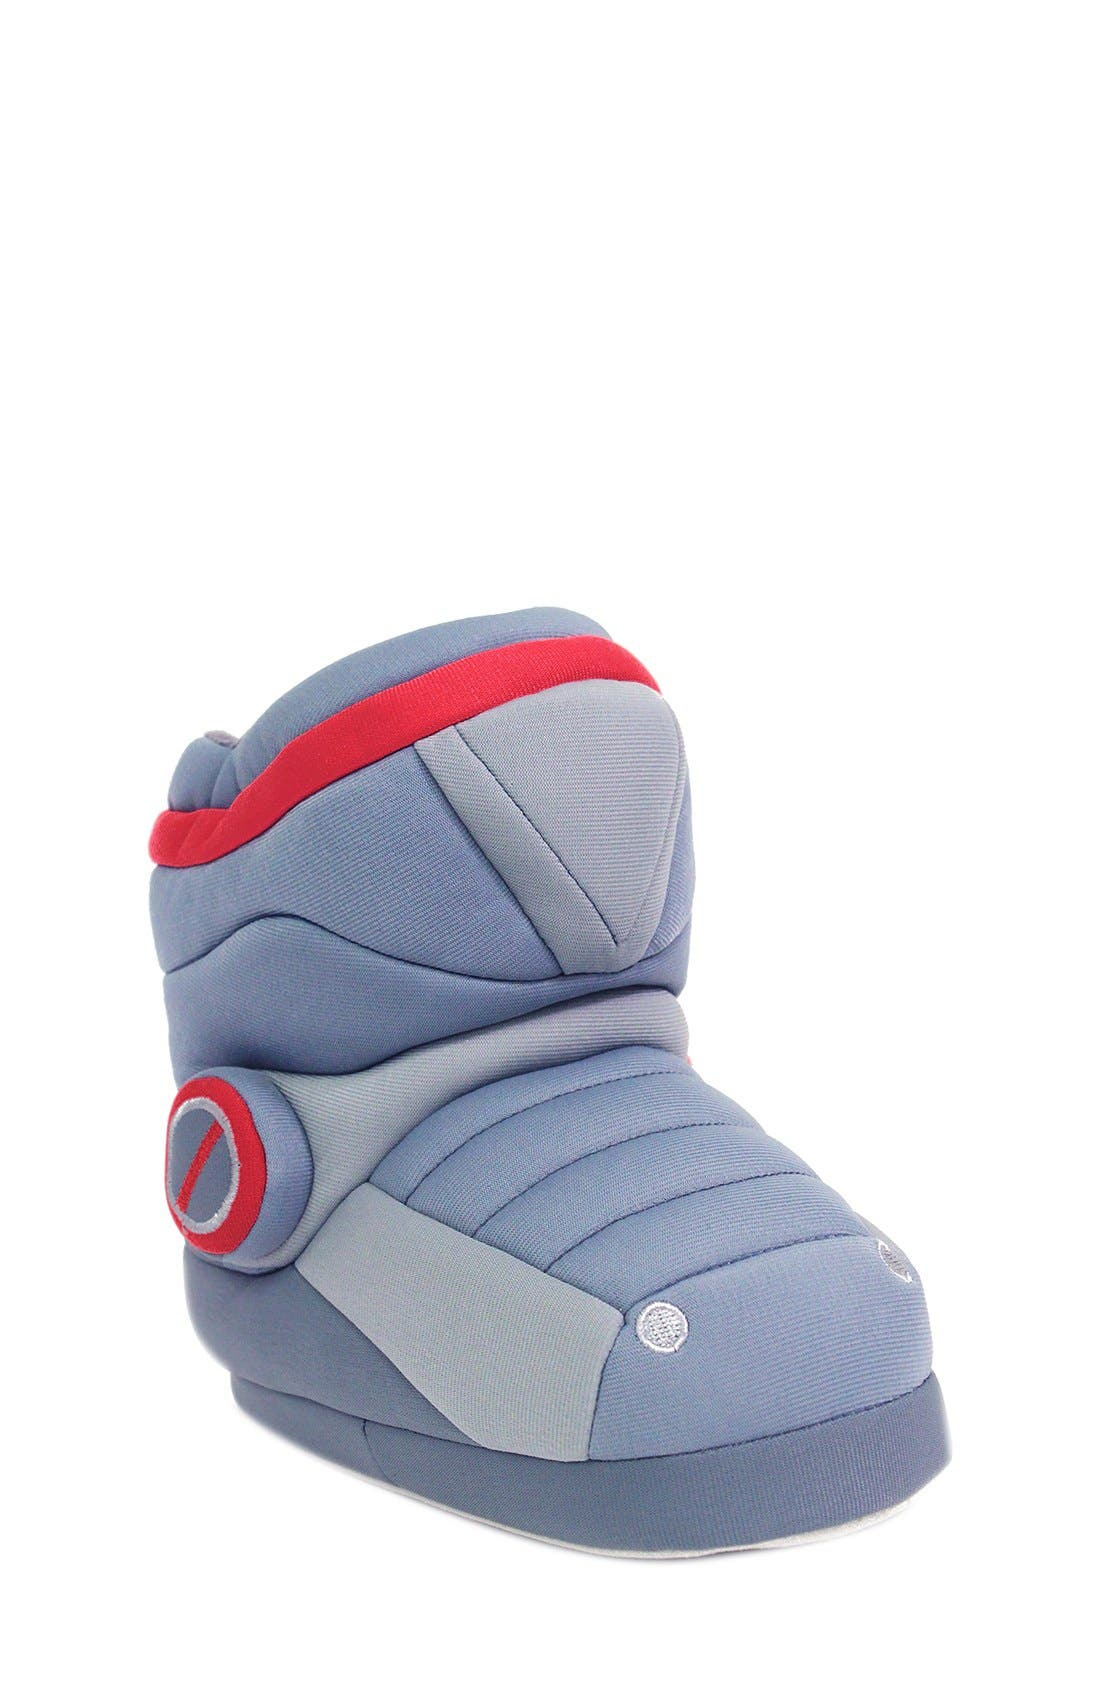 Trimfit Robot Slipper Boot (Toddler & Little Kid)